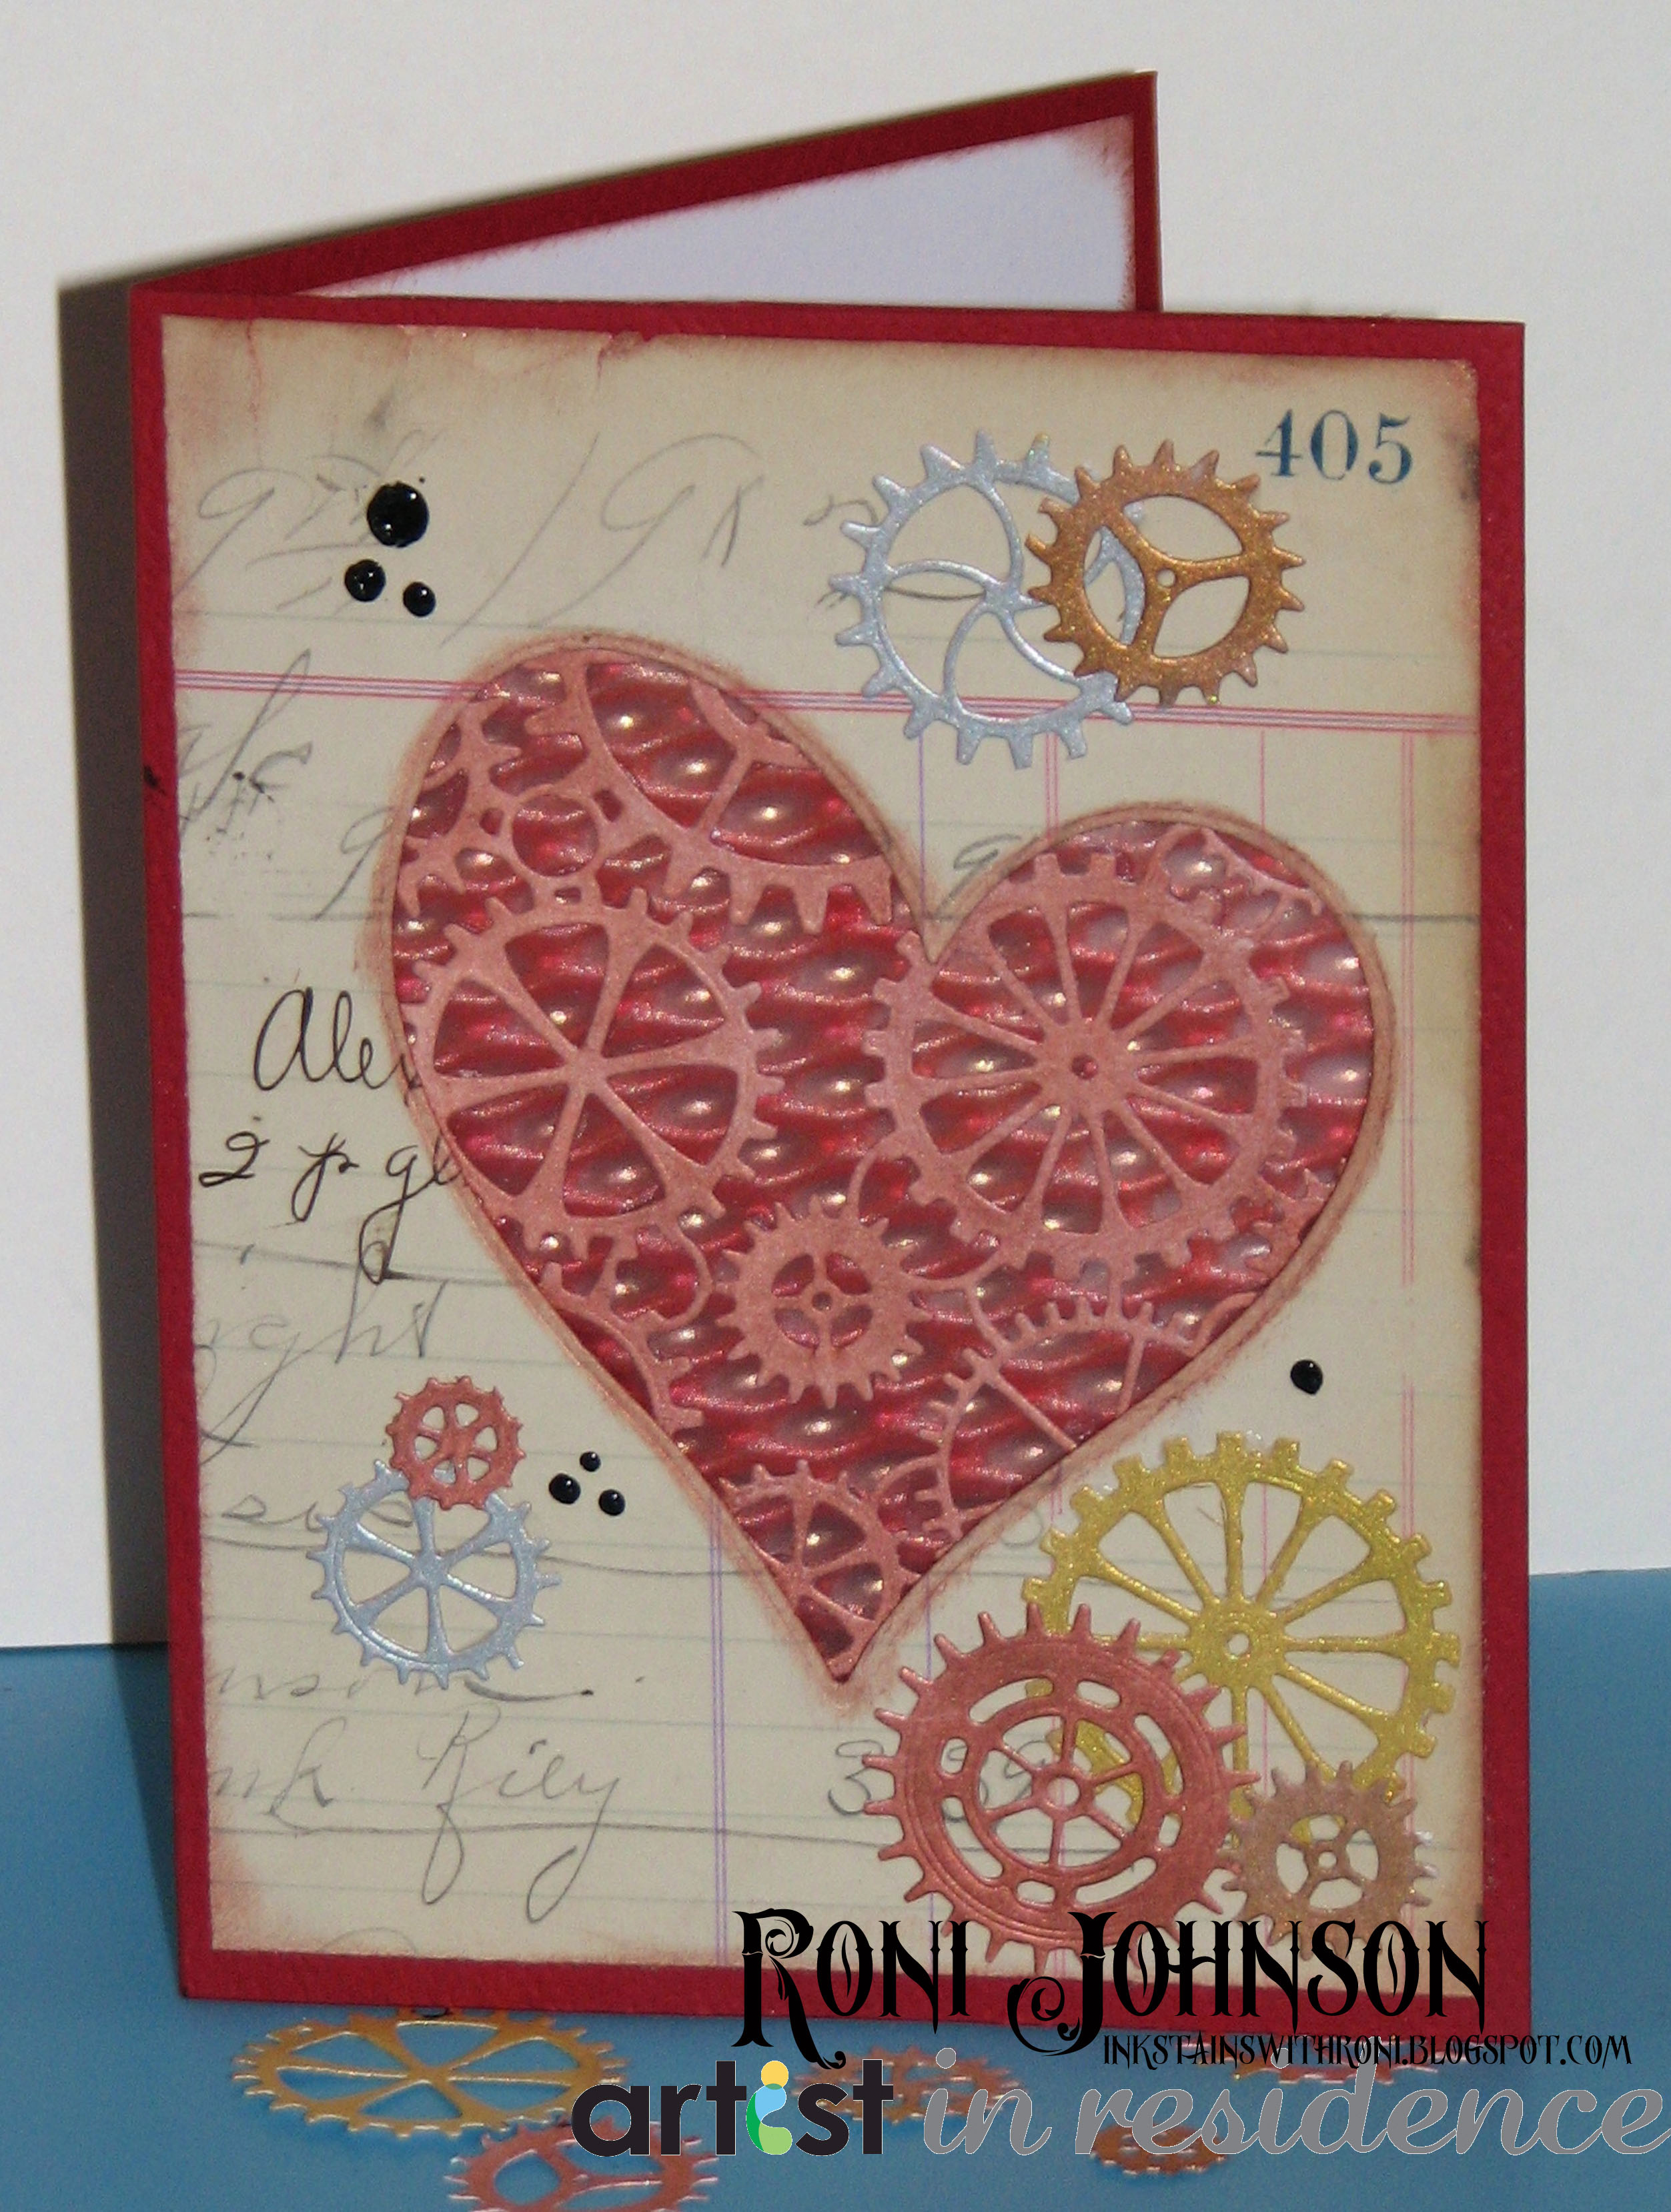 Delicata Ink for a Steampunk Valentine's Day Card